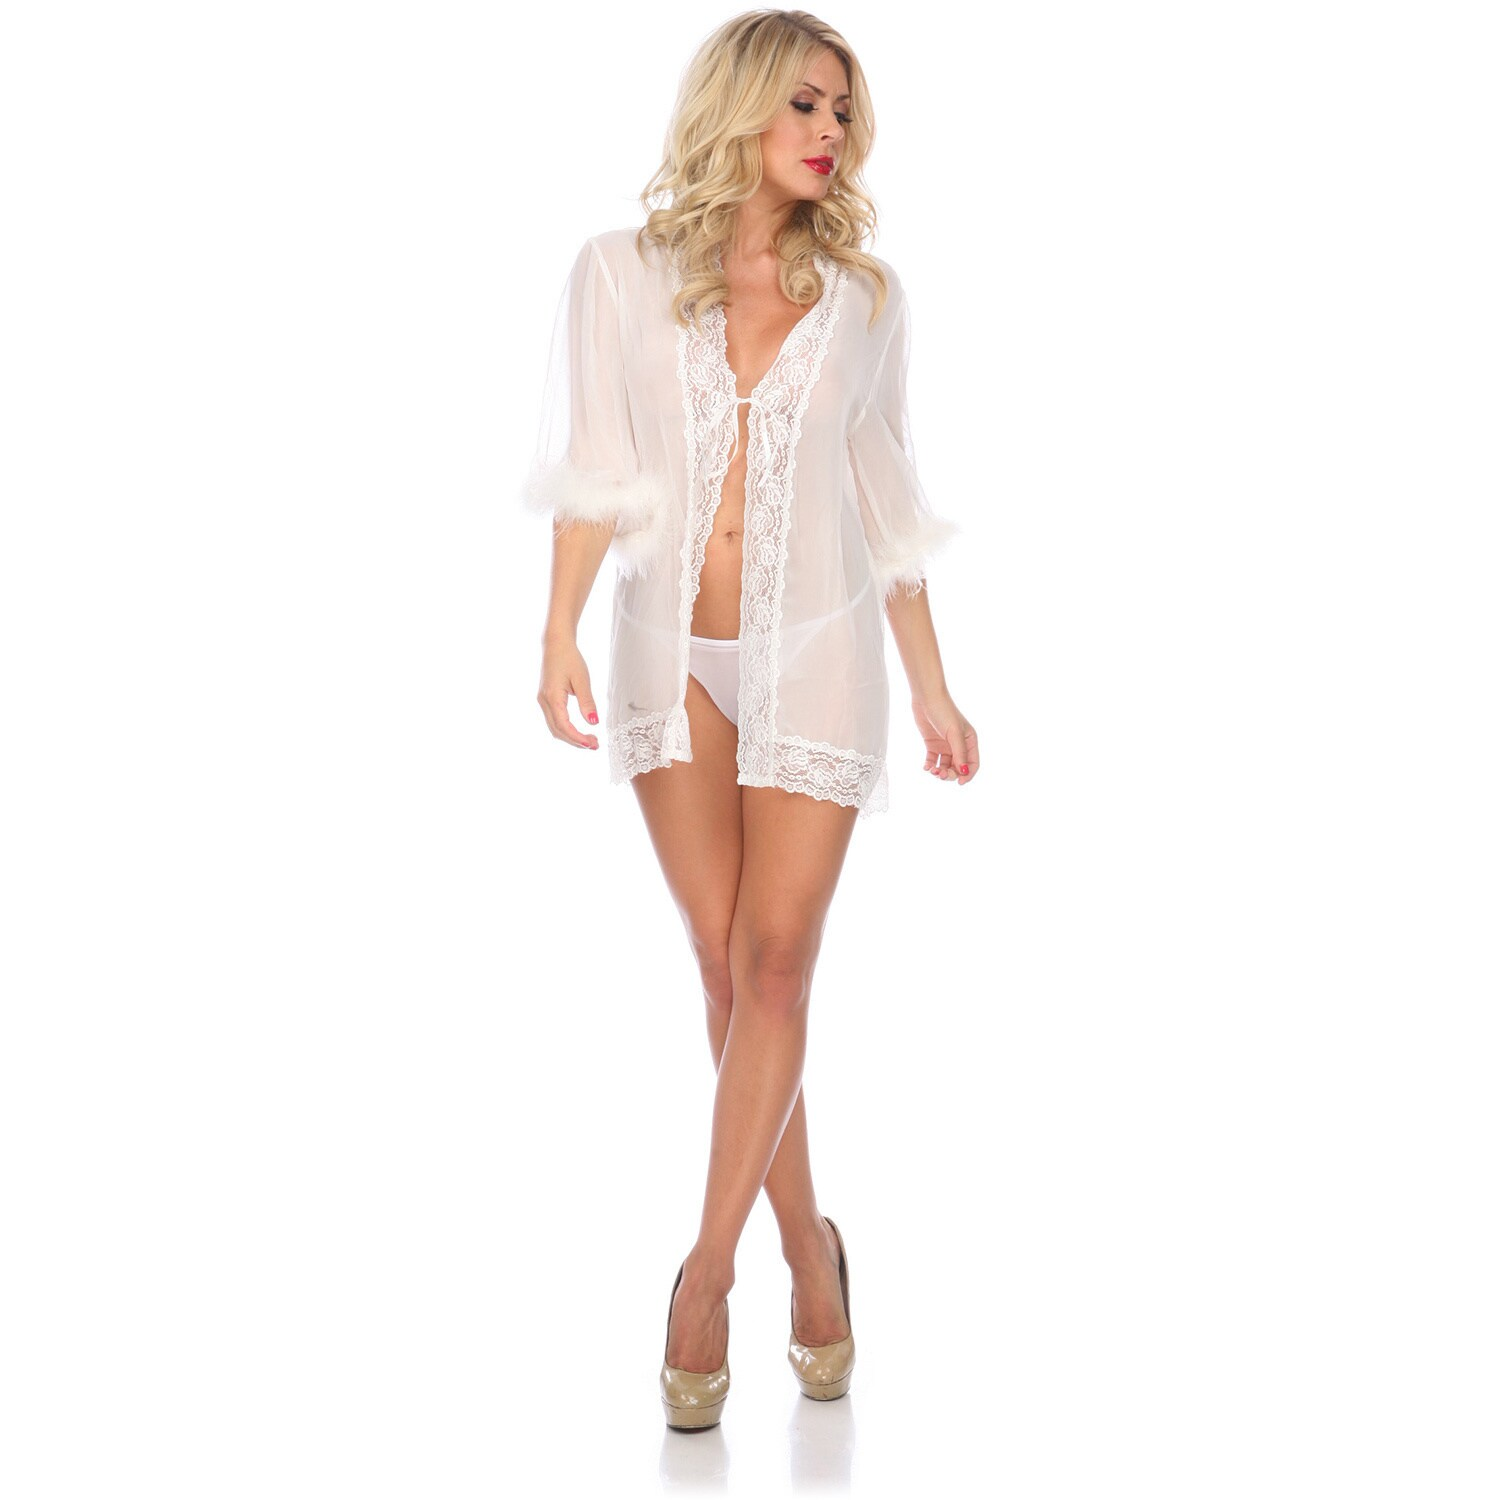 Popsi Lingerie Chiffon and Lace Robe (Red-Os), Women's, R...